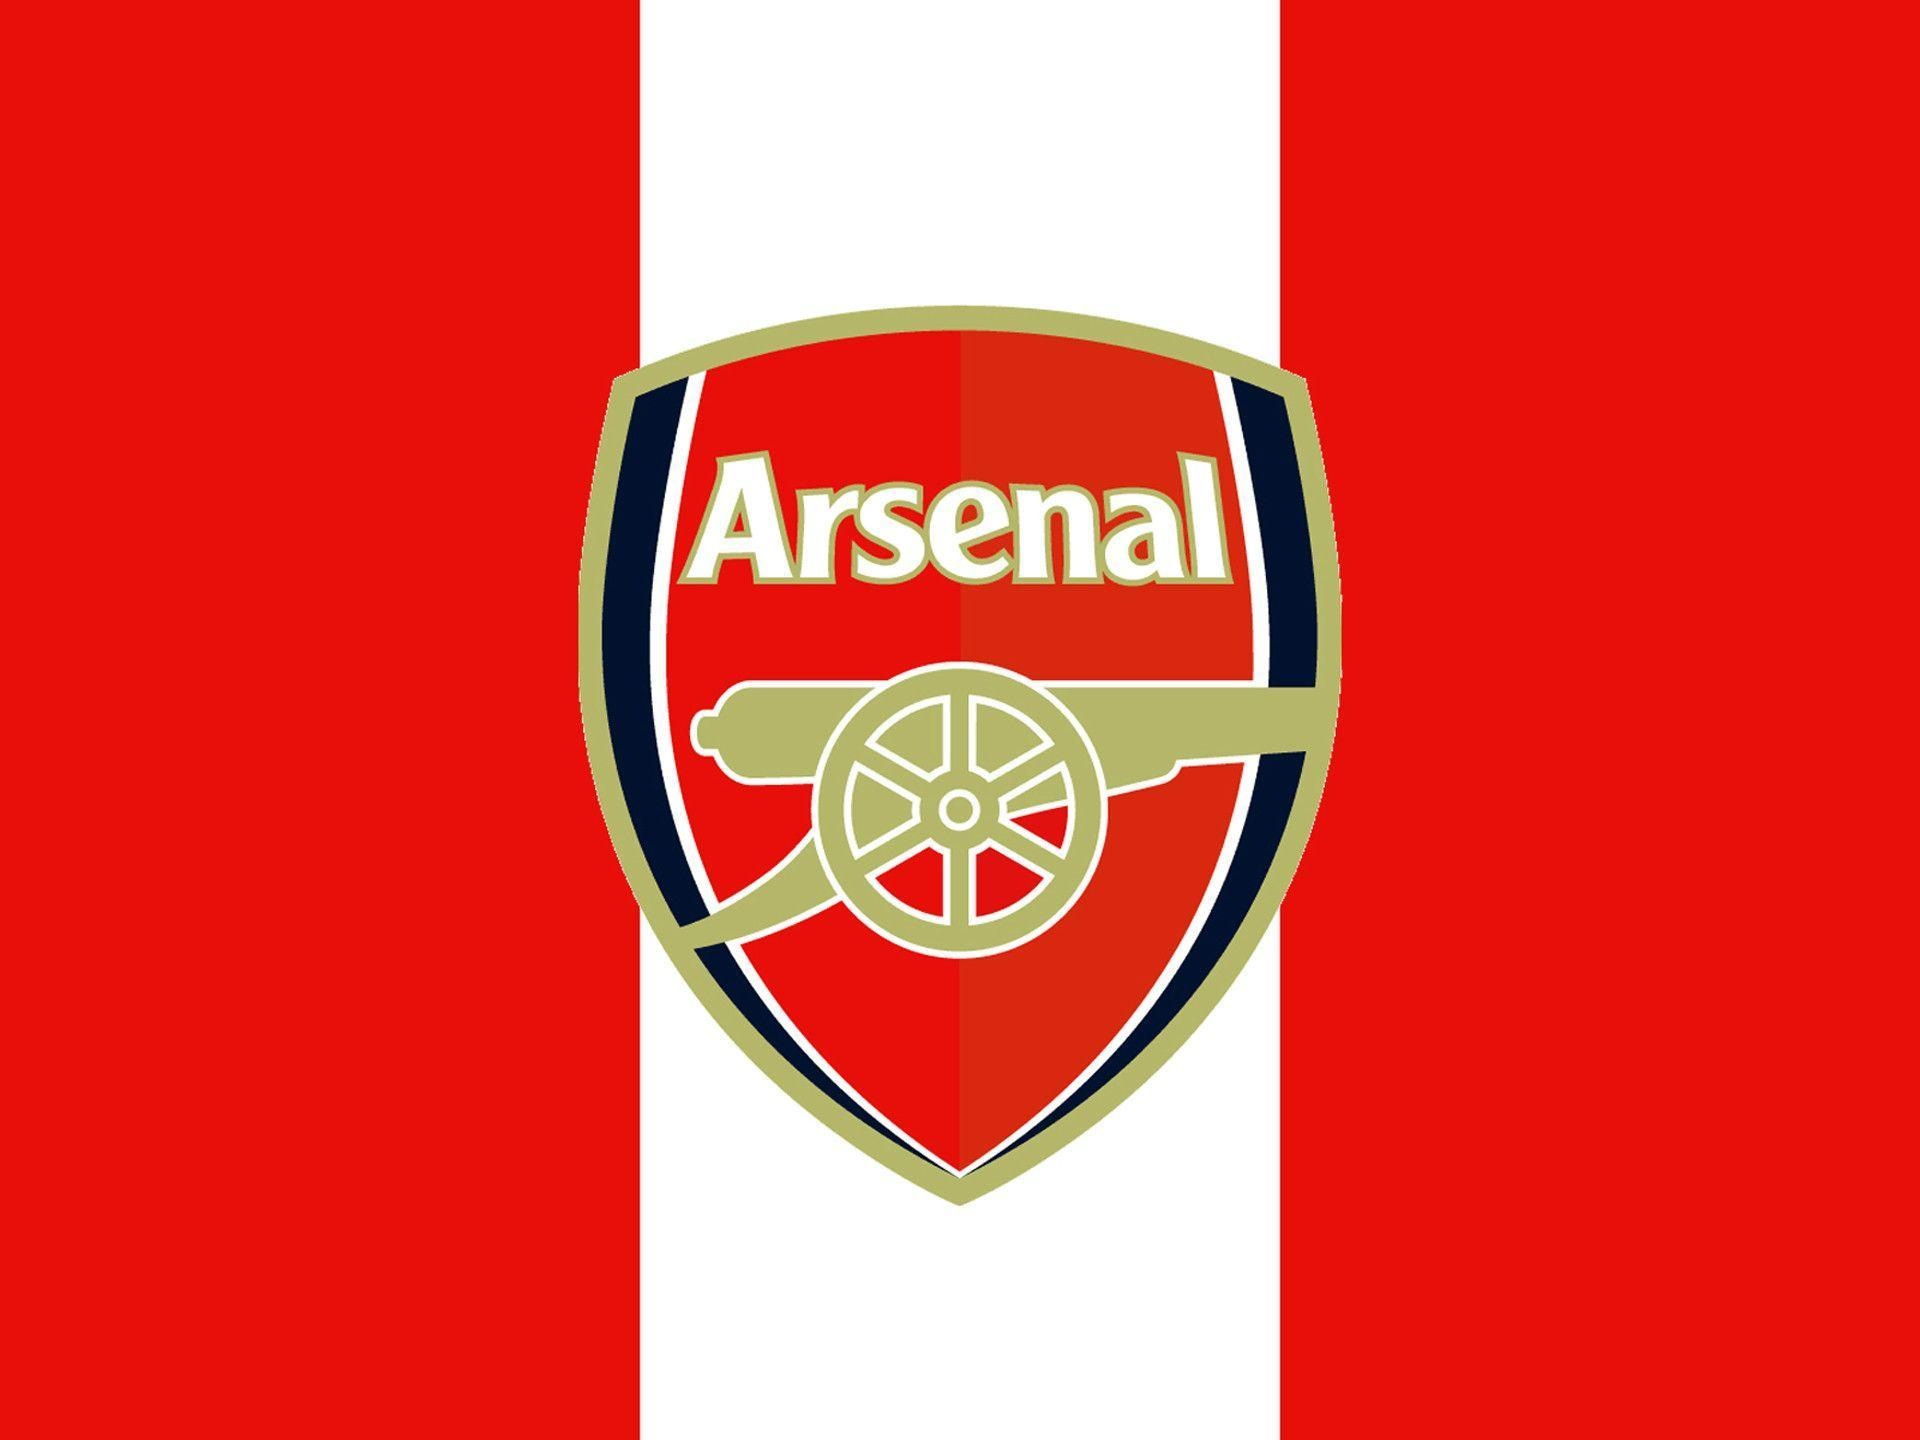 Arsenal Logo Wallpapers - Wallpaper Cave